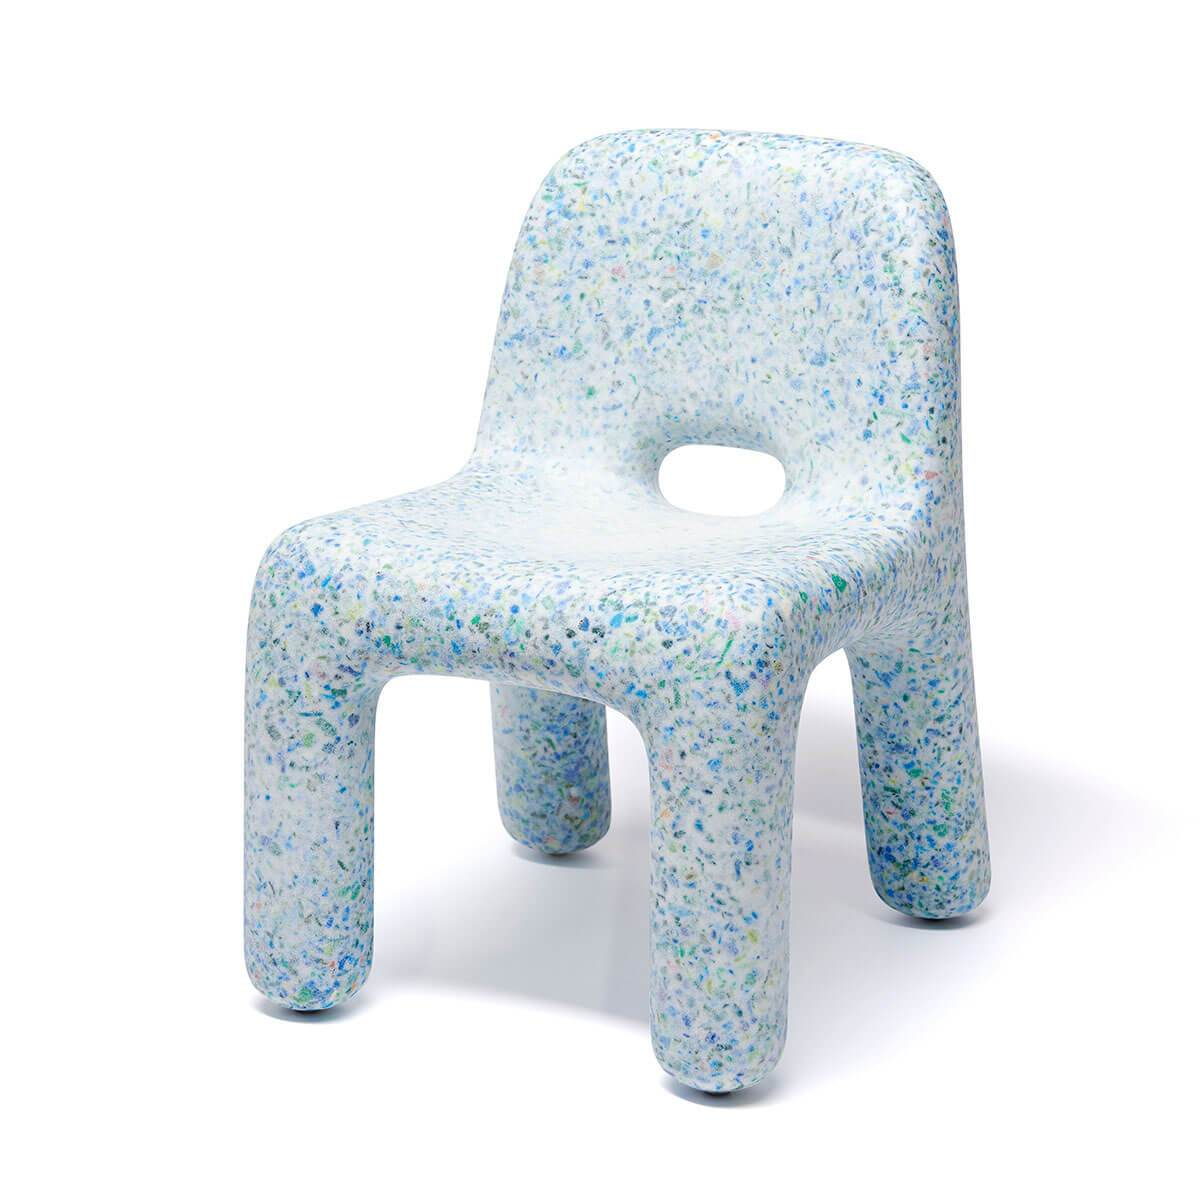 ecoBirdy: Charlie Chair Ocean    This kid's chair by ecoBirdy is made out of 100 % recycled plastics and is fully recyclable. It is made with  ecothylene®  : an innovative material developed by ecoBirdy.